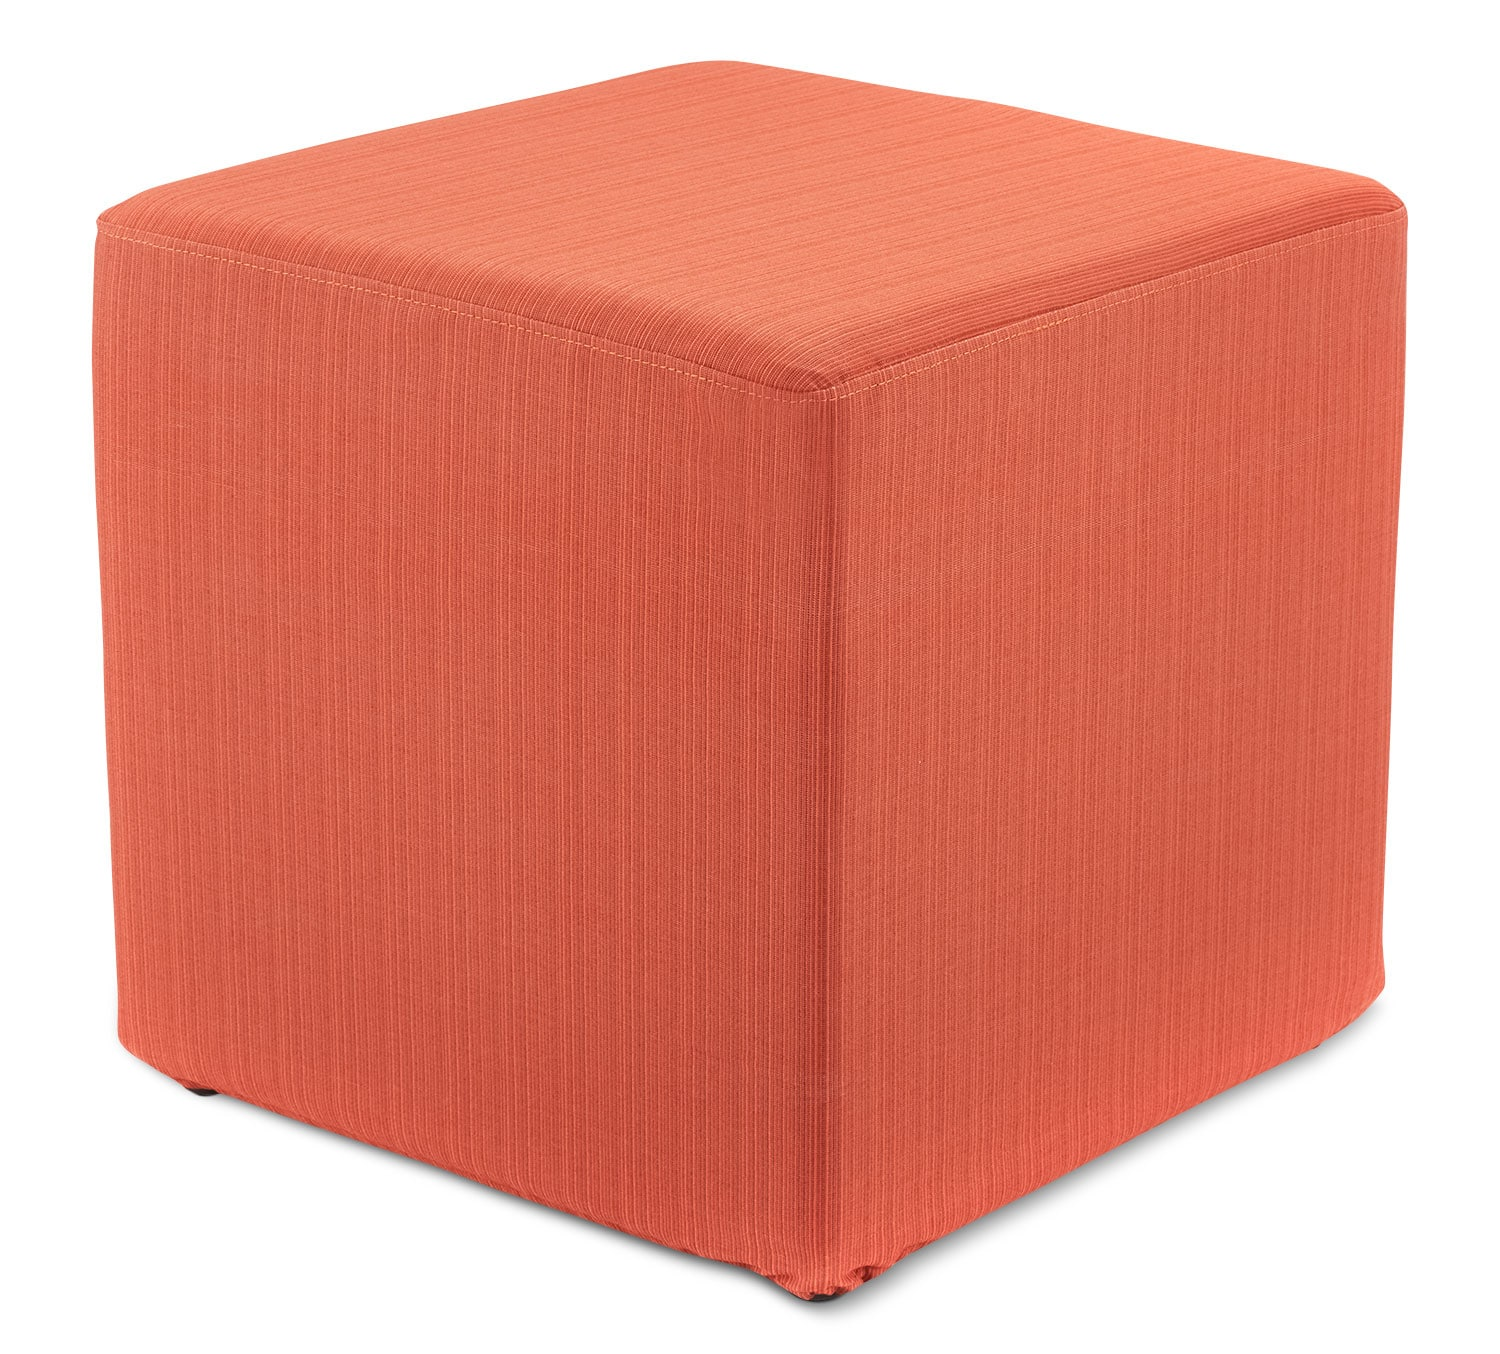 Outdoor Furniture - Sasha Outdoor Ottoman - Orange